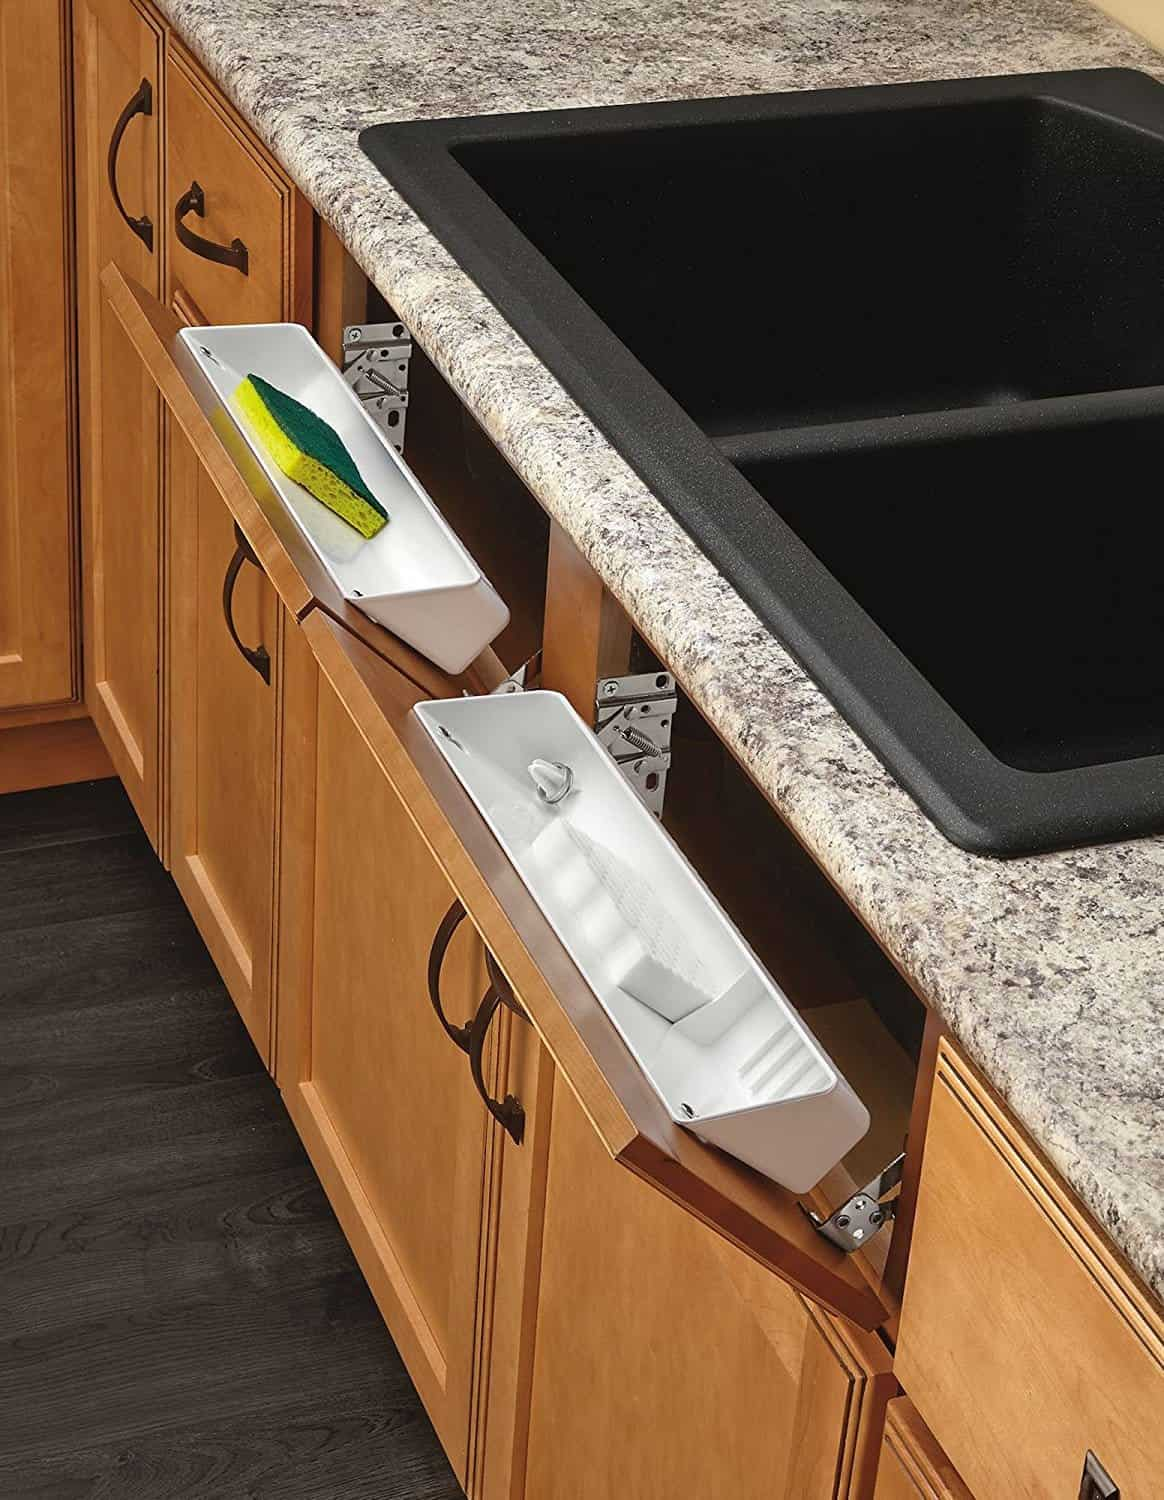 Drawer hinges for kitchen organization.